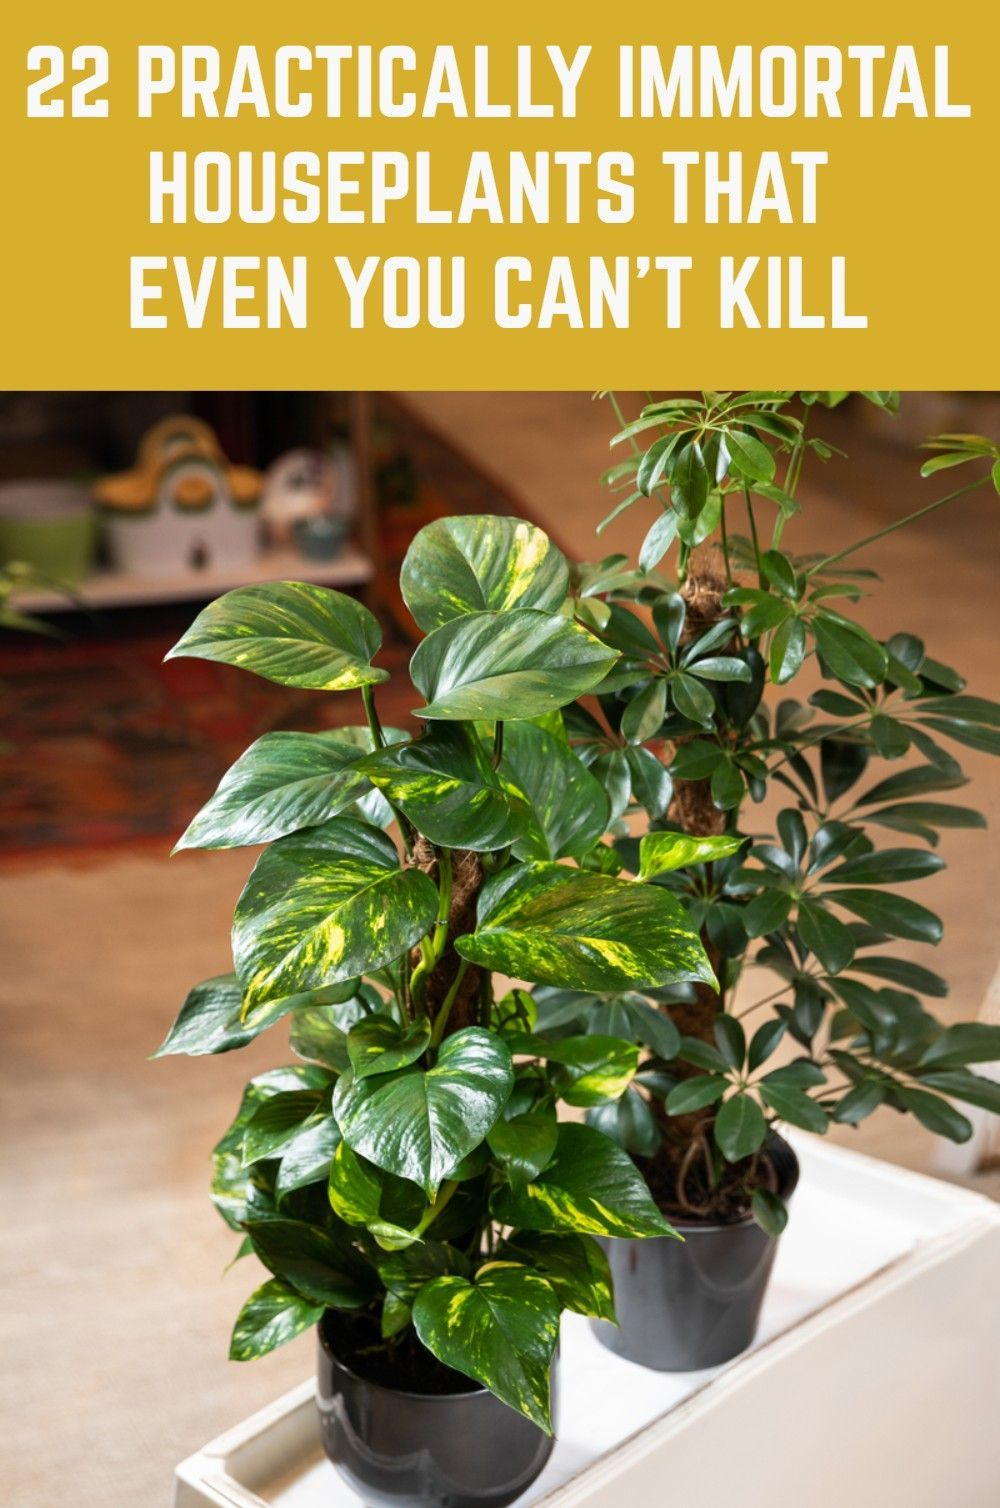 22 Practically Immortal Houseplants That Even You Can't Kill